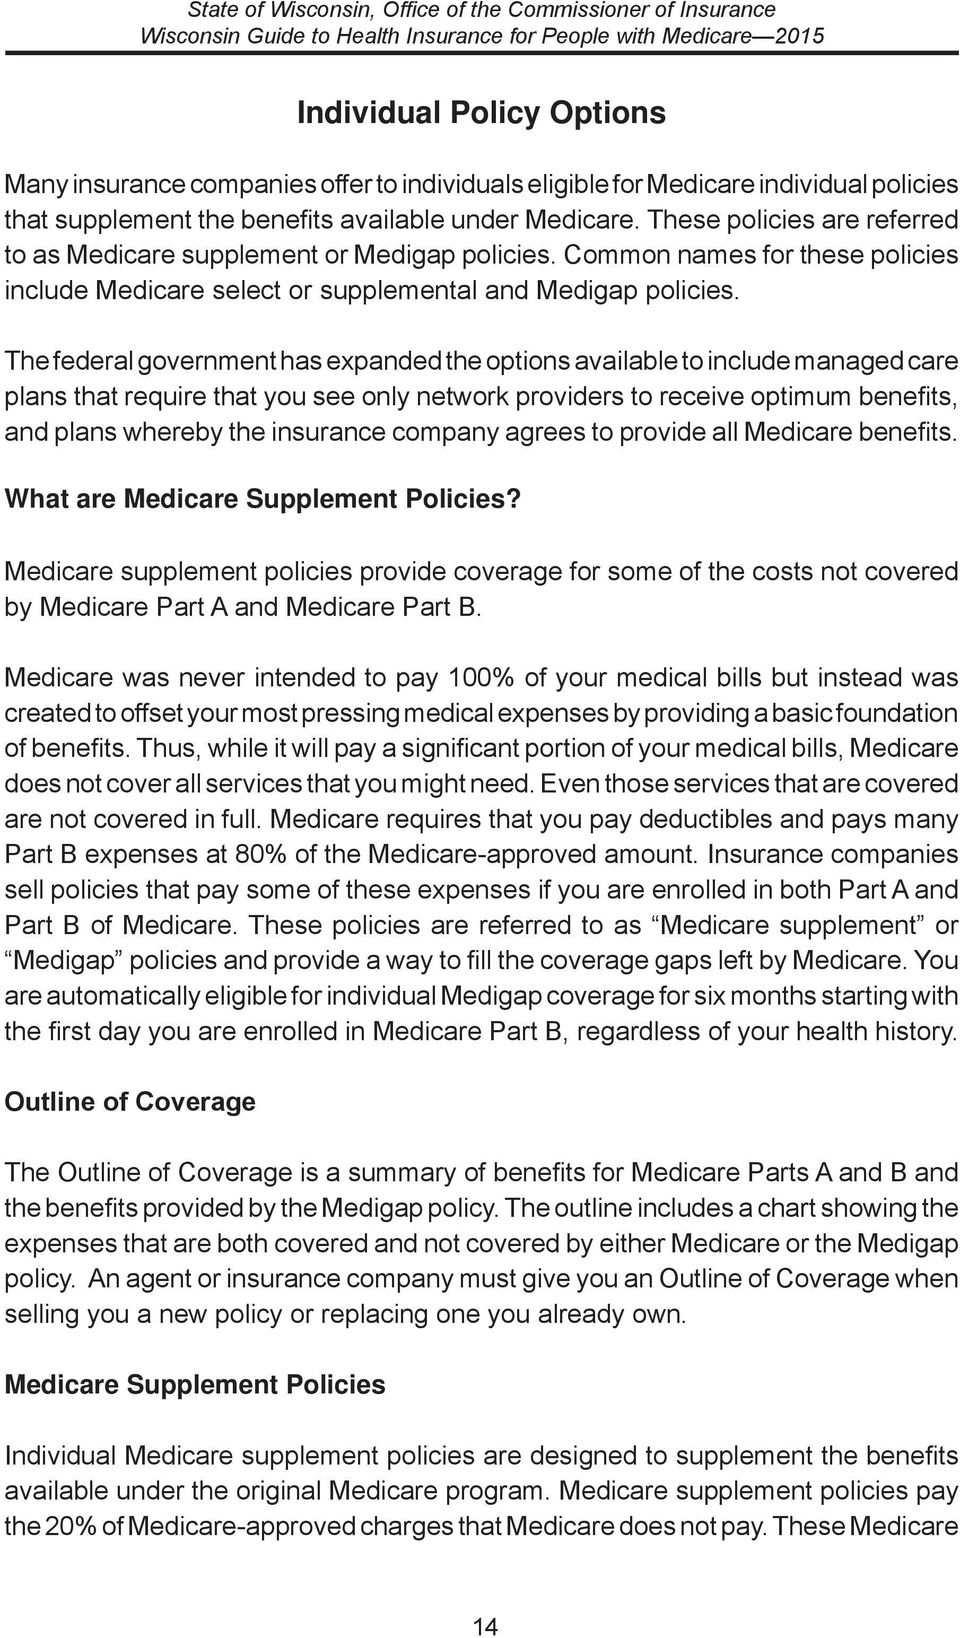 The federal government has expanded the options available to include managed care plans that require that you see only network providers to receive optimum benefits, and plans whereby the insurance